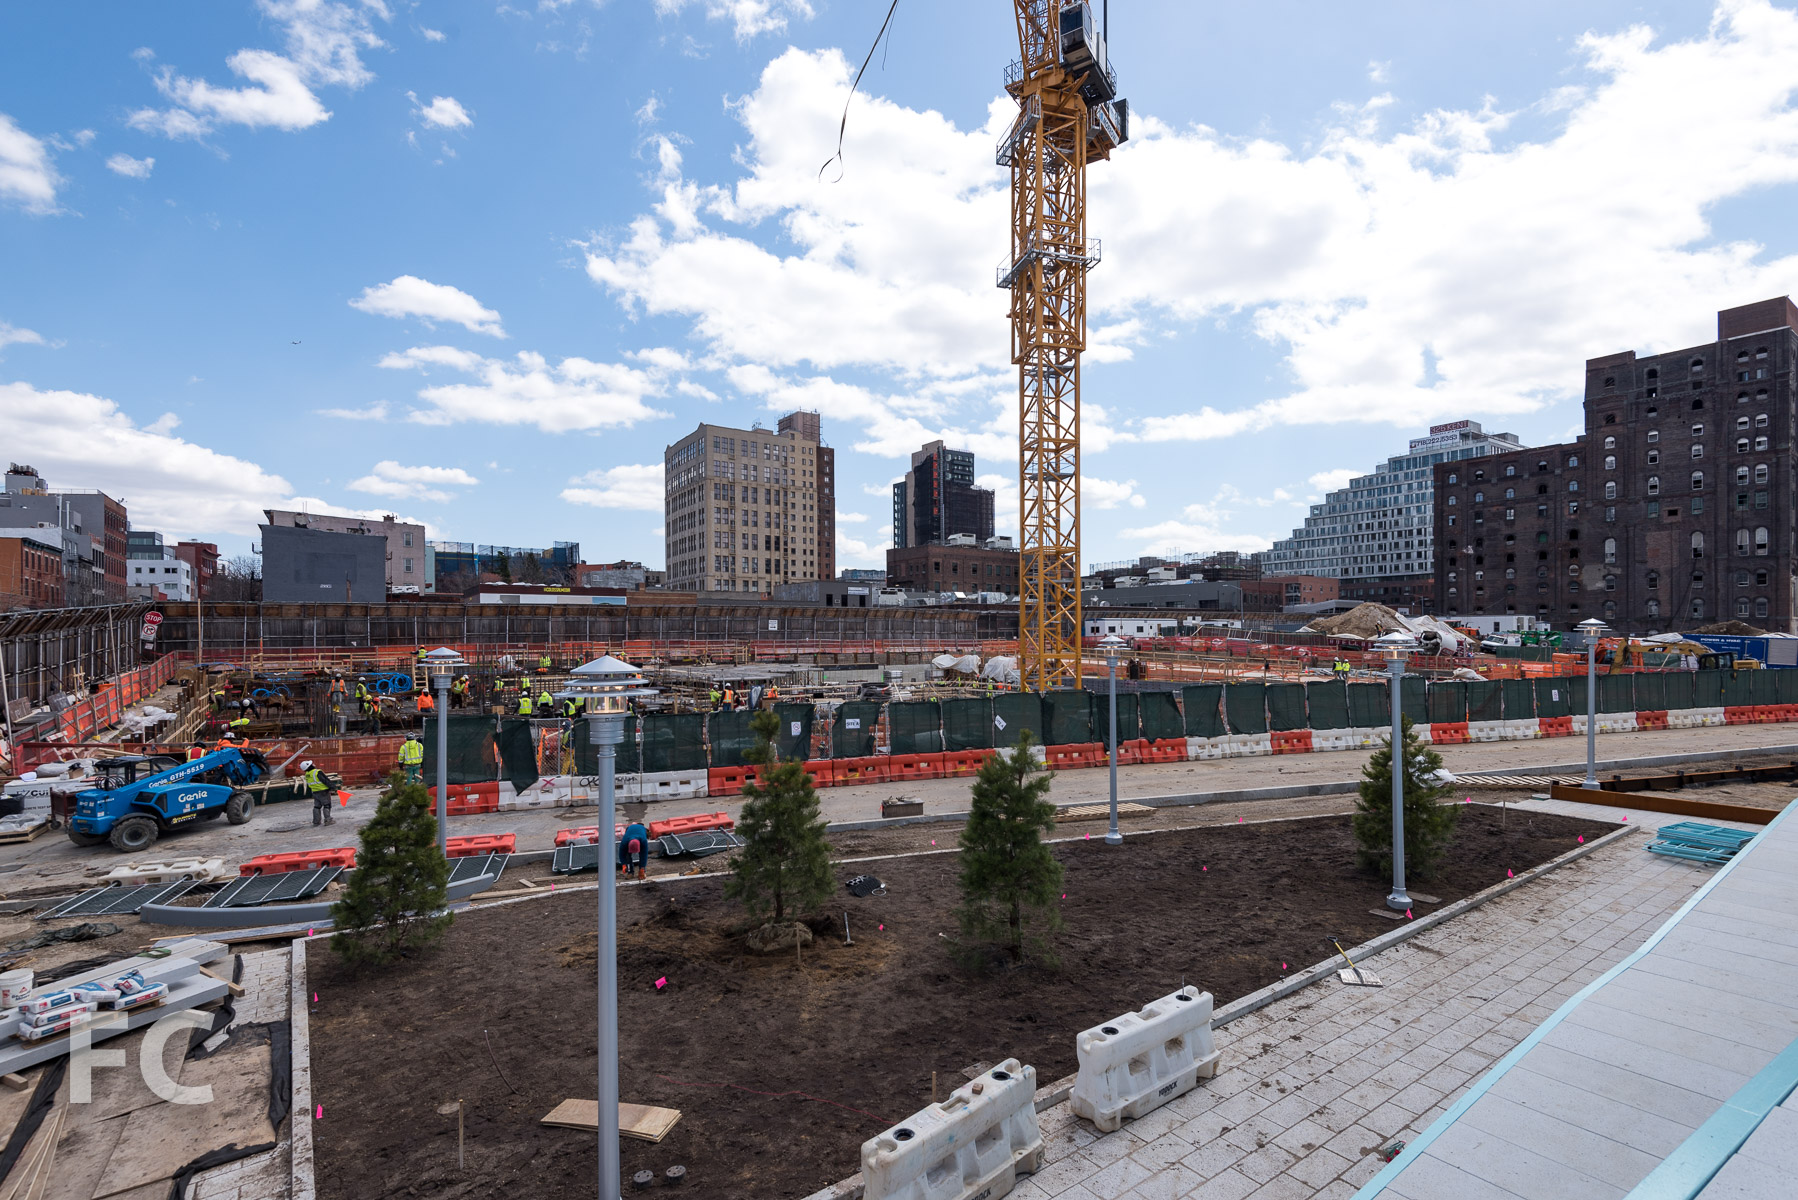 Looking at the site of 260 Kent Avenue from the elevated gantry crane walk.